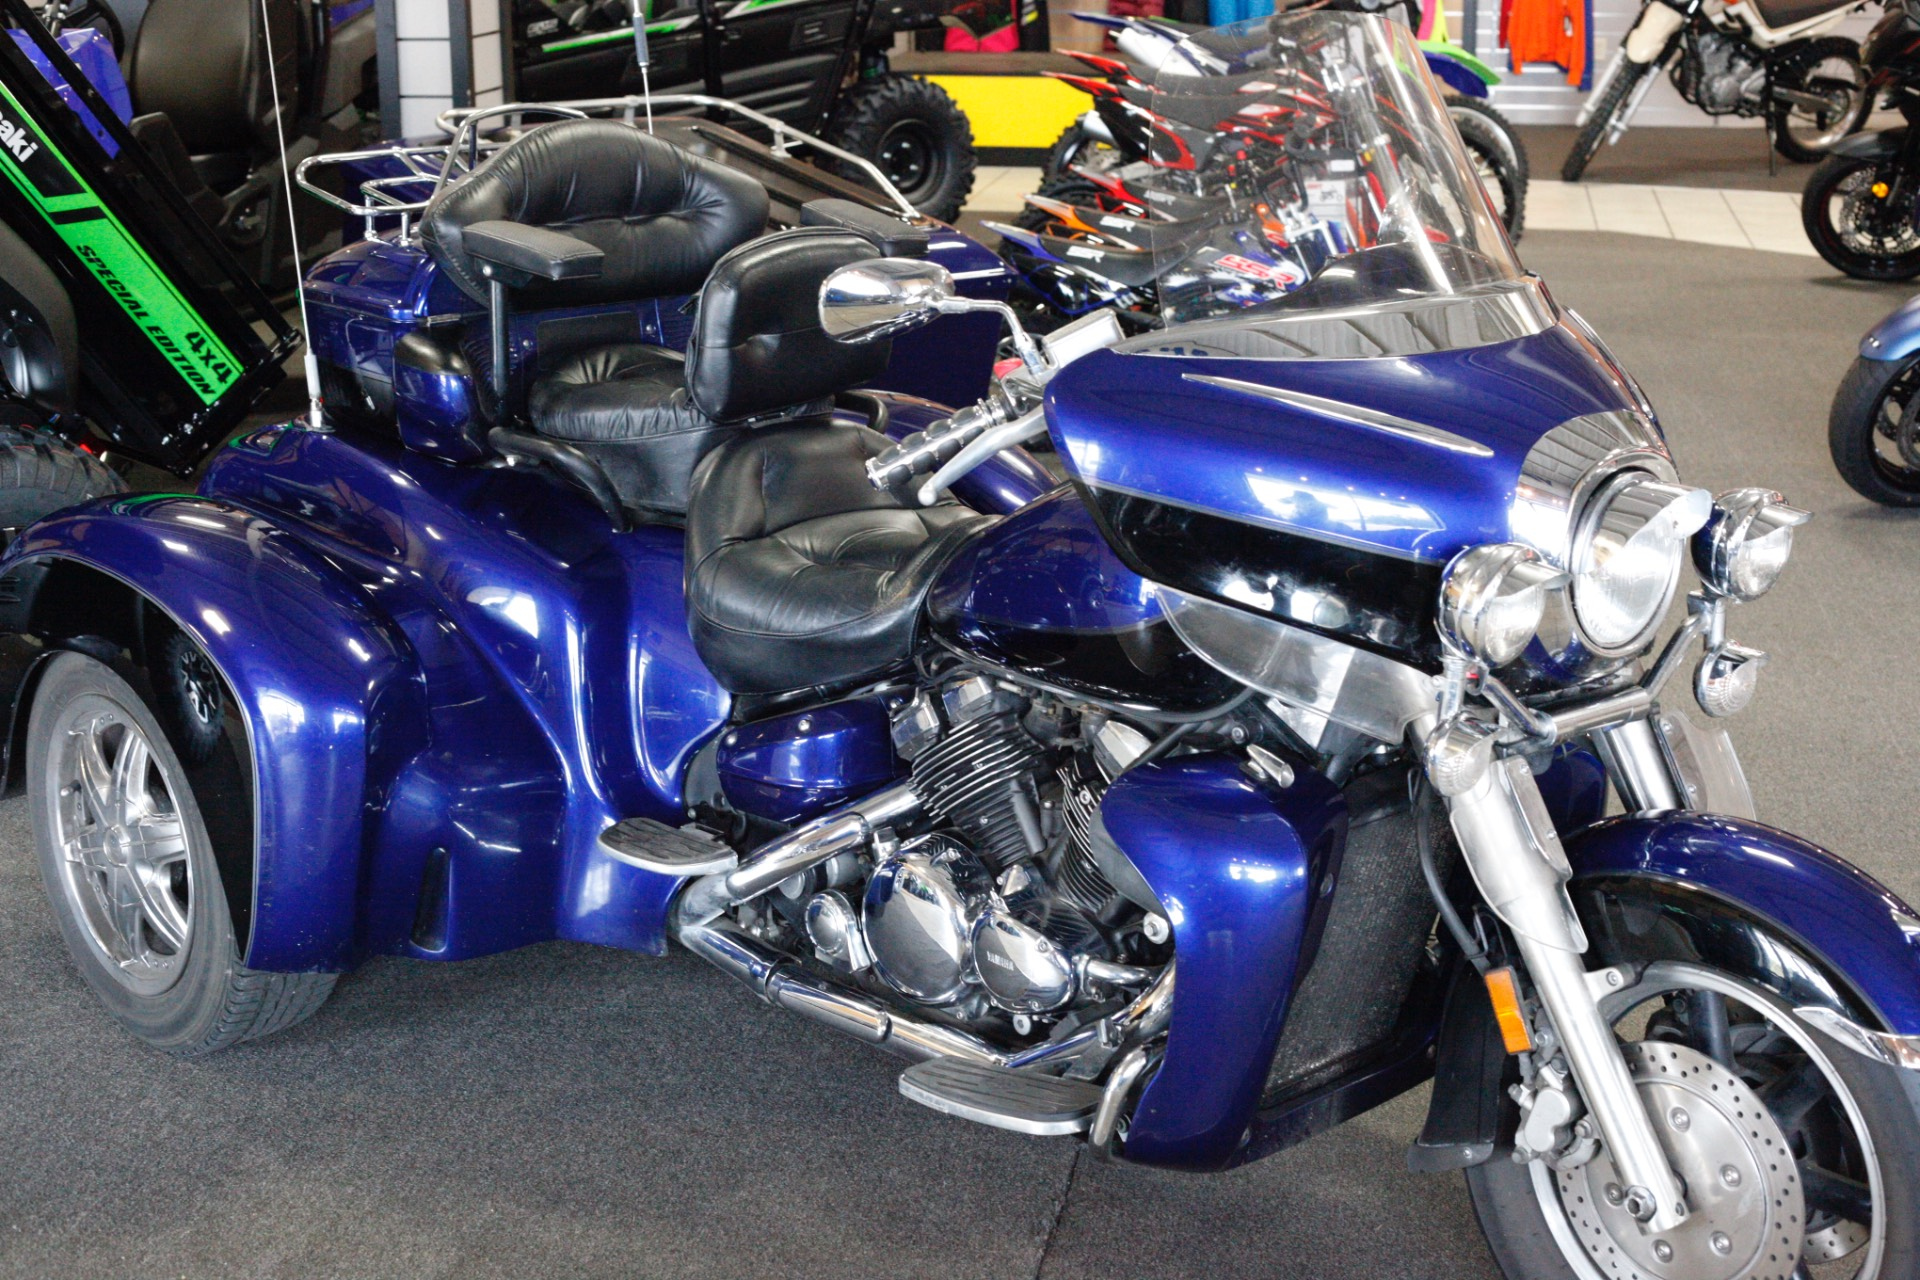 Used 2007 Yamaha Royal Star® Venture Motorcycles in Rock Falls, IL